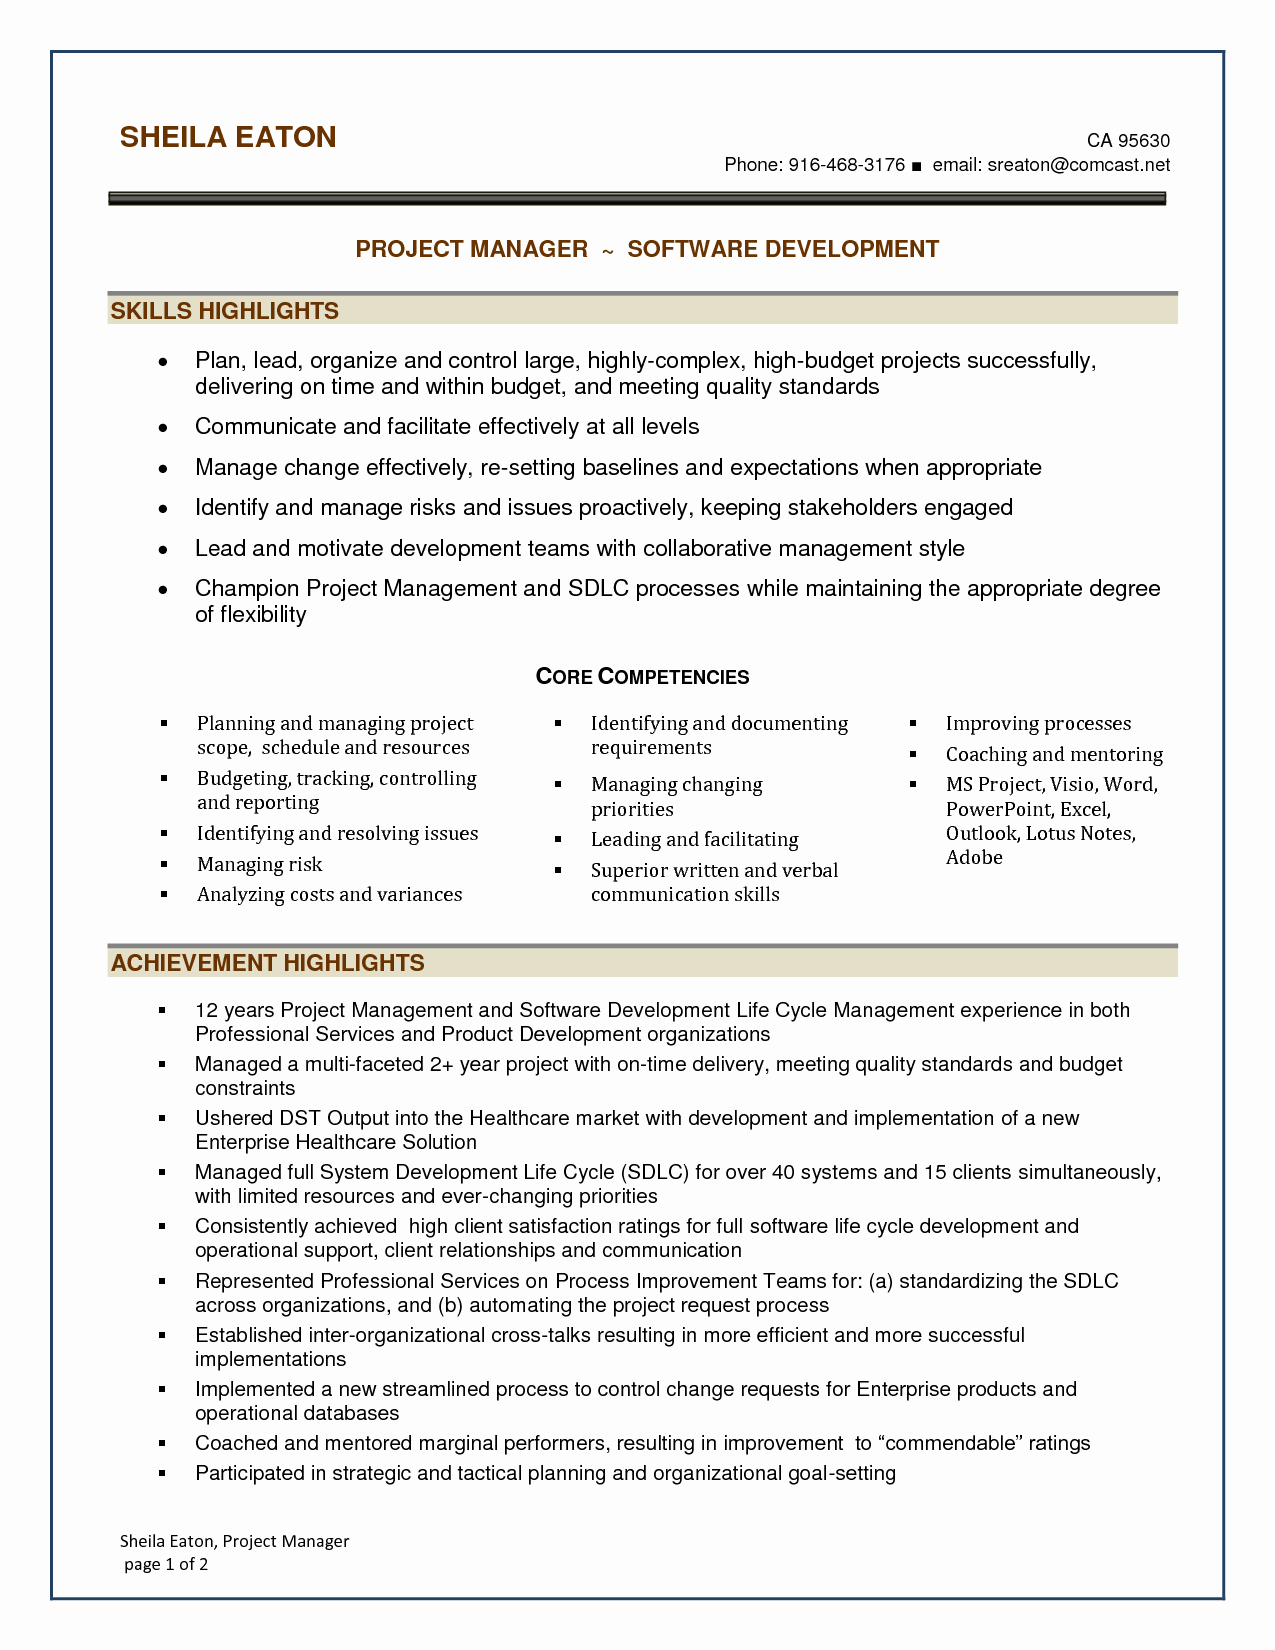 Software Development Manager Resume